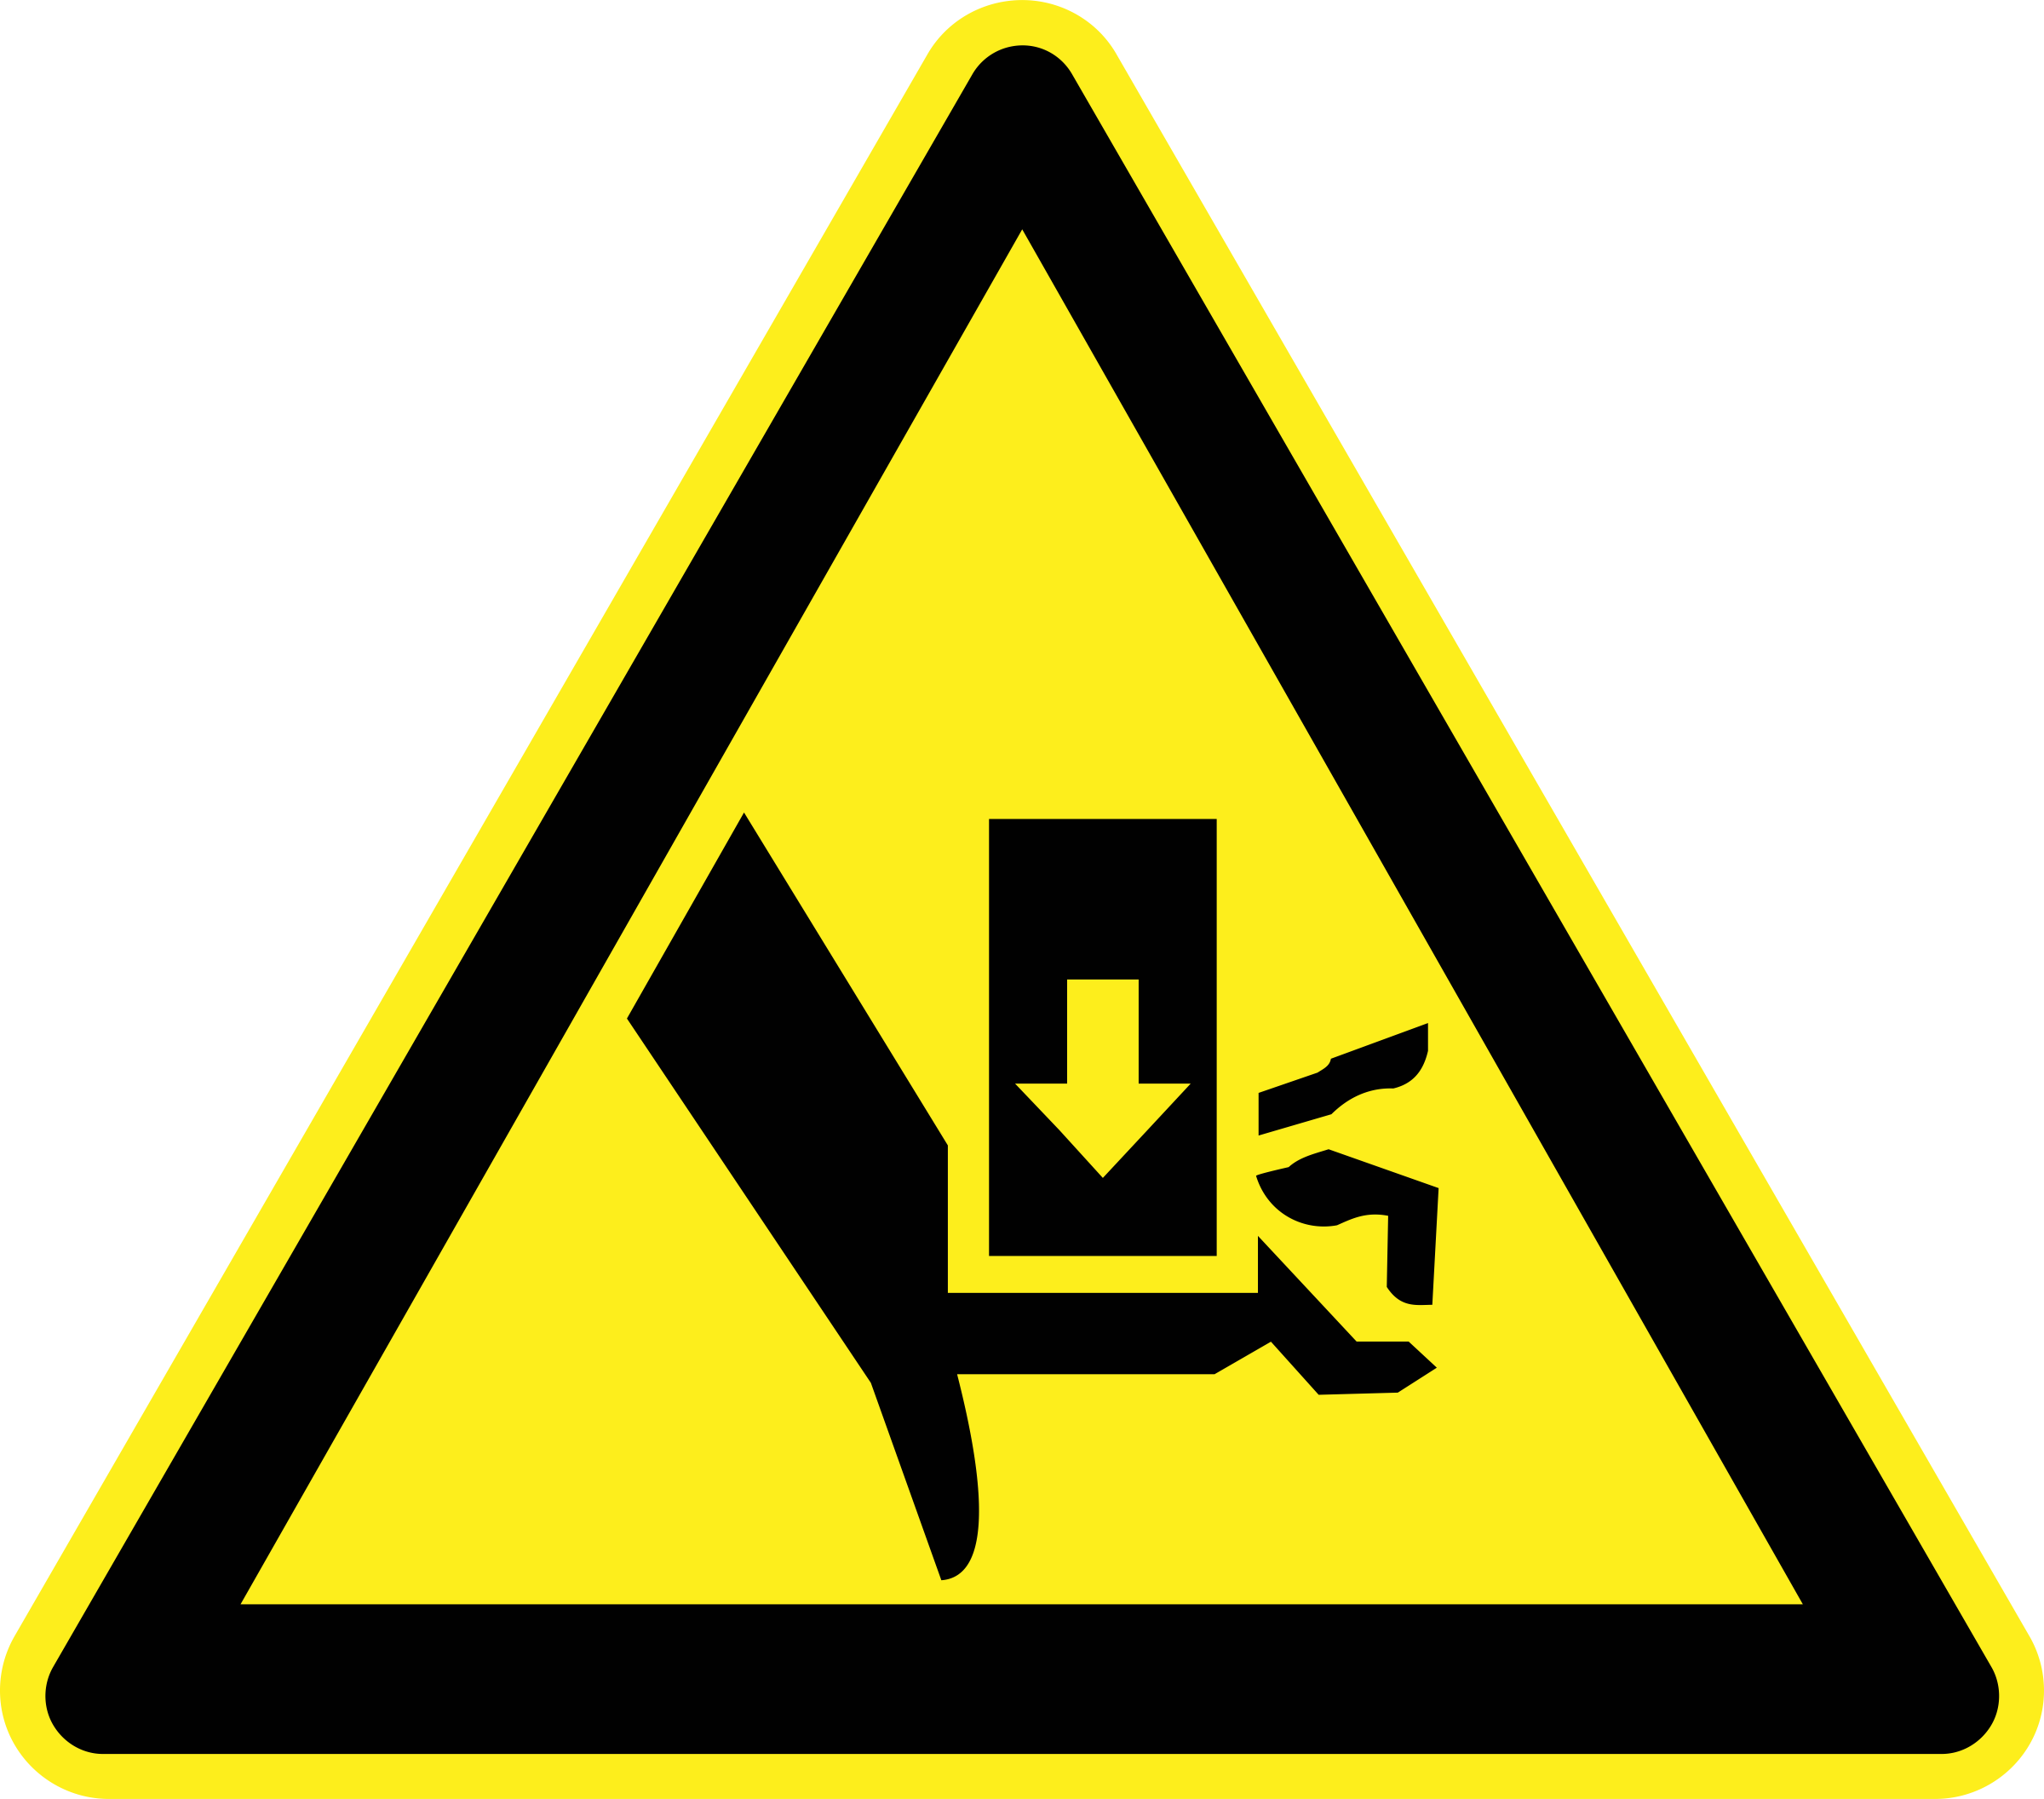 Crush Hazard Warning Sign by h0us3s